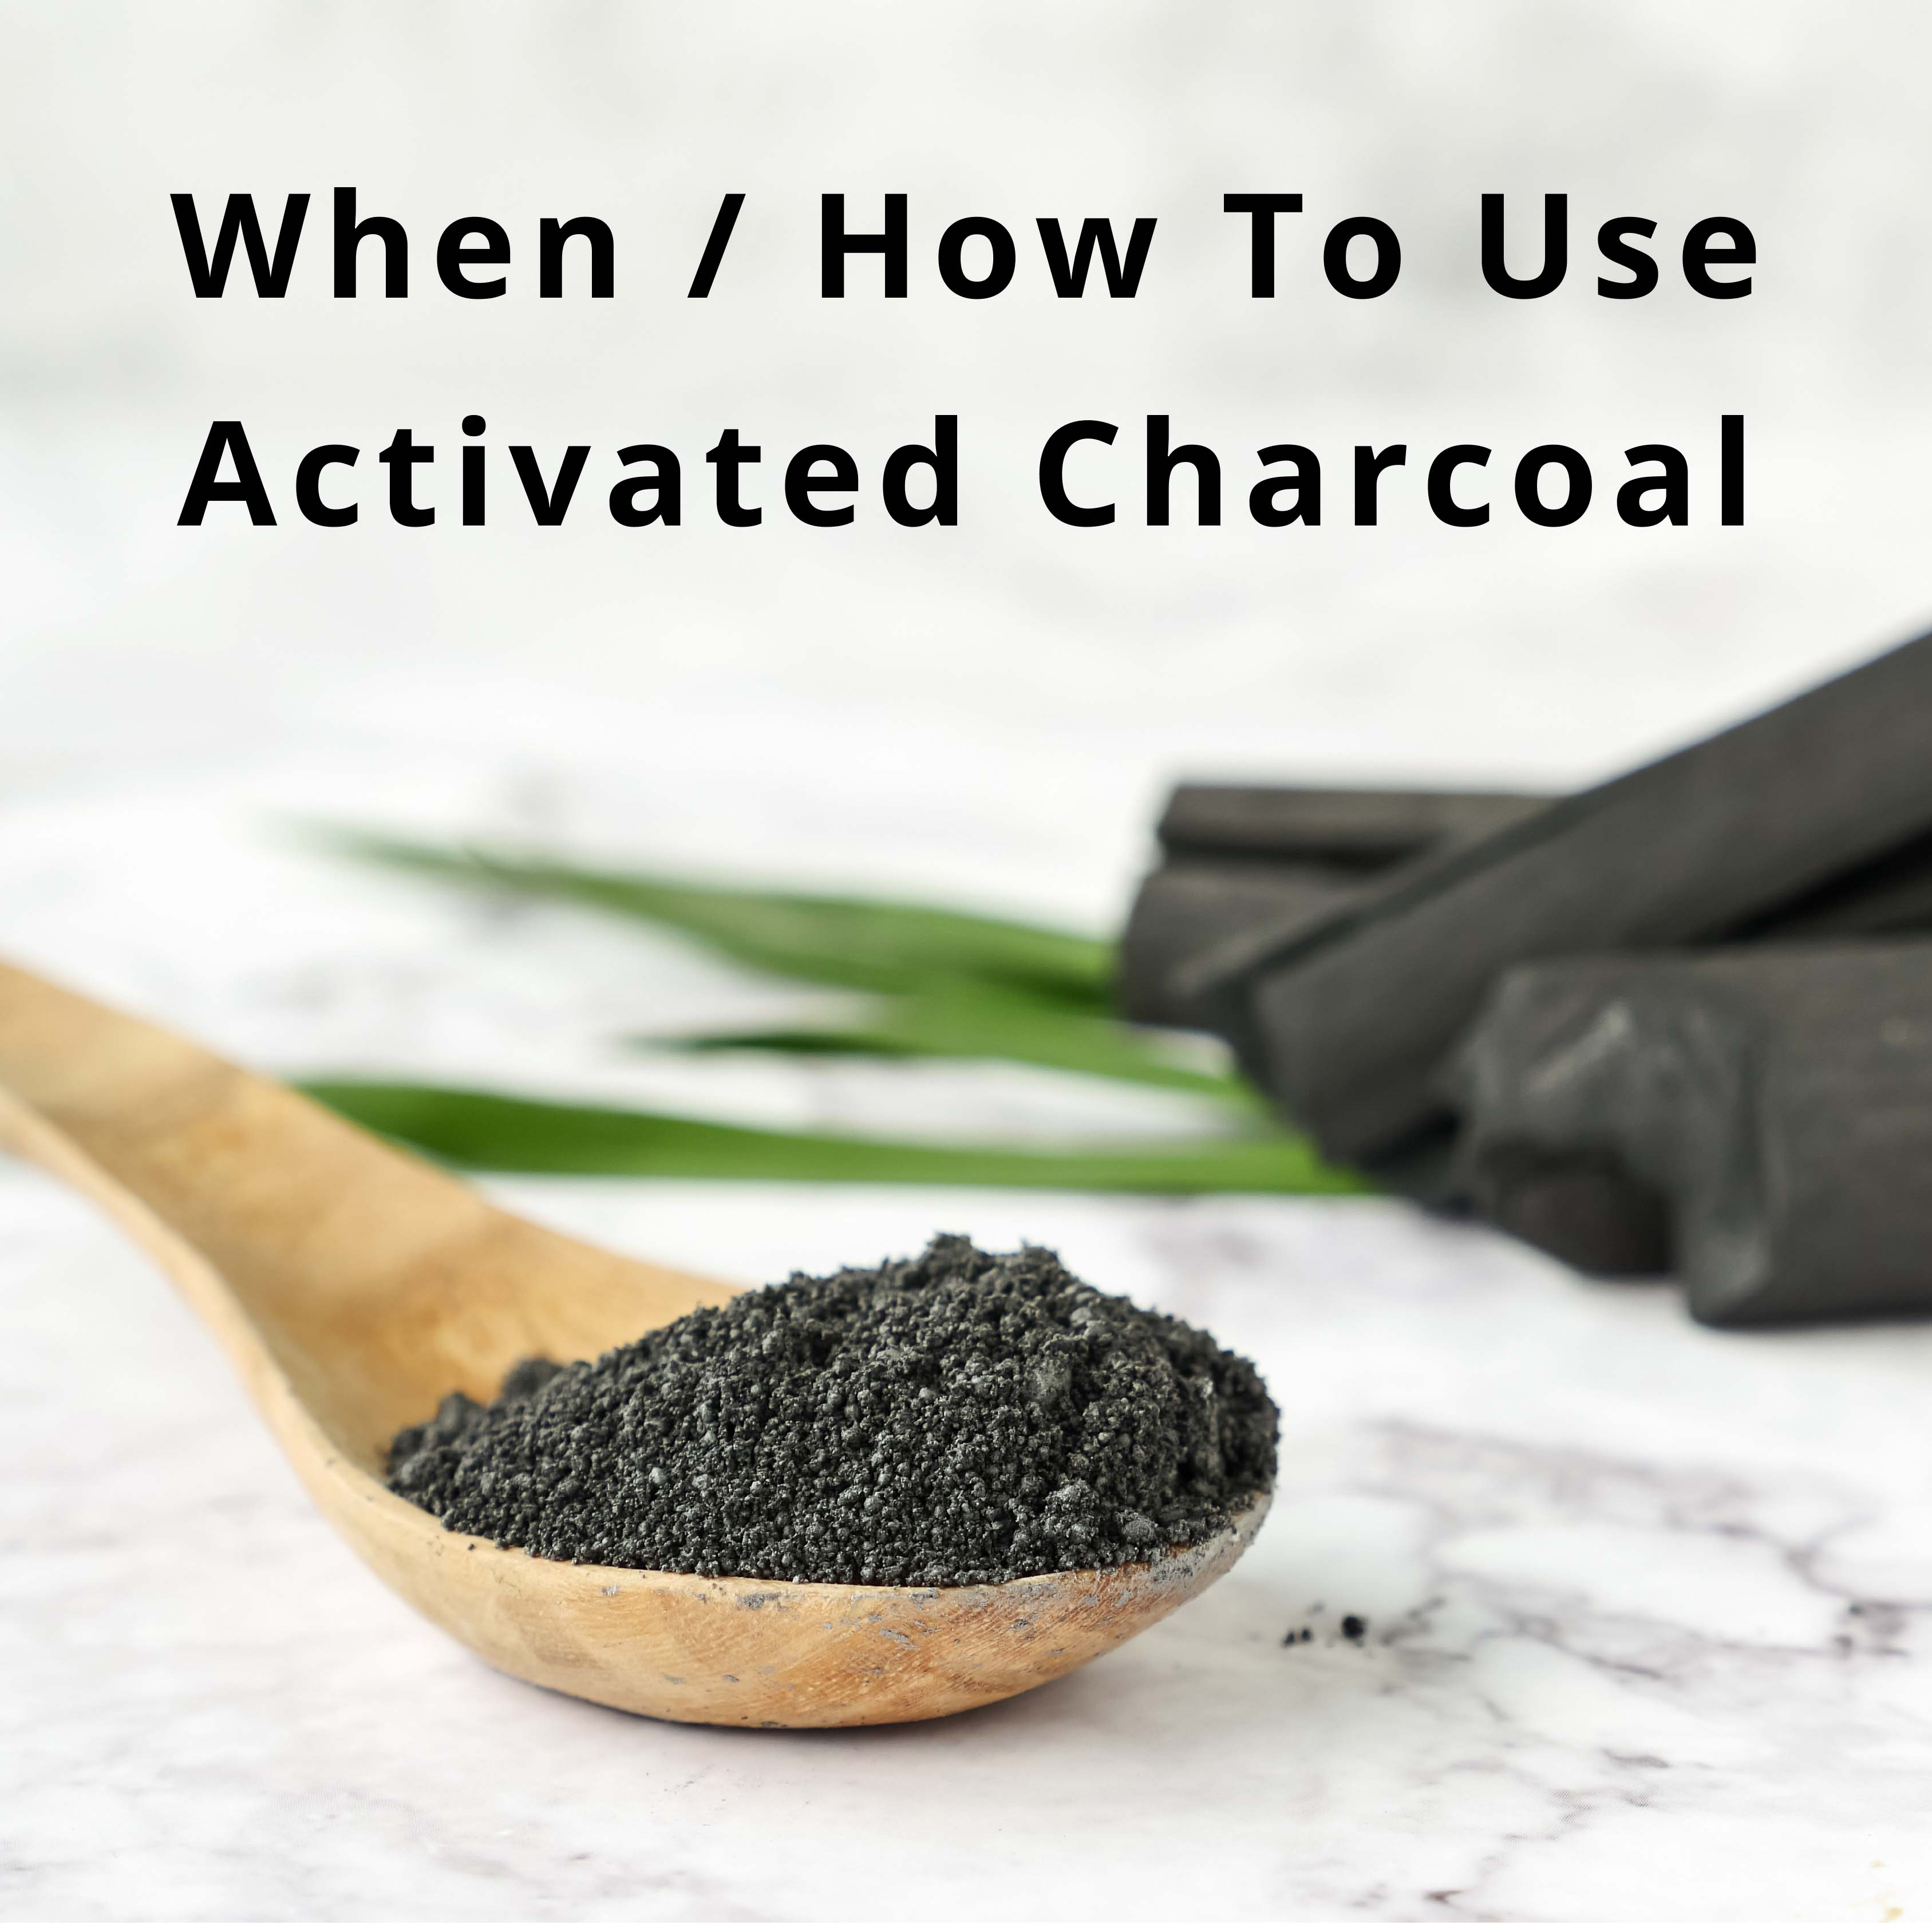 When and How to Use Activated Charcoal - Peaceful Heart Farm